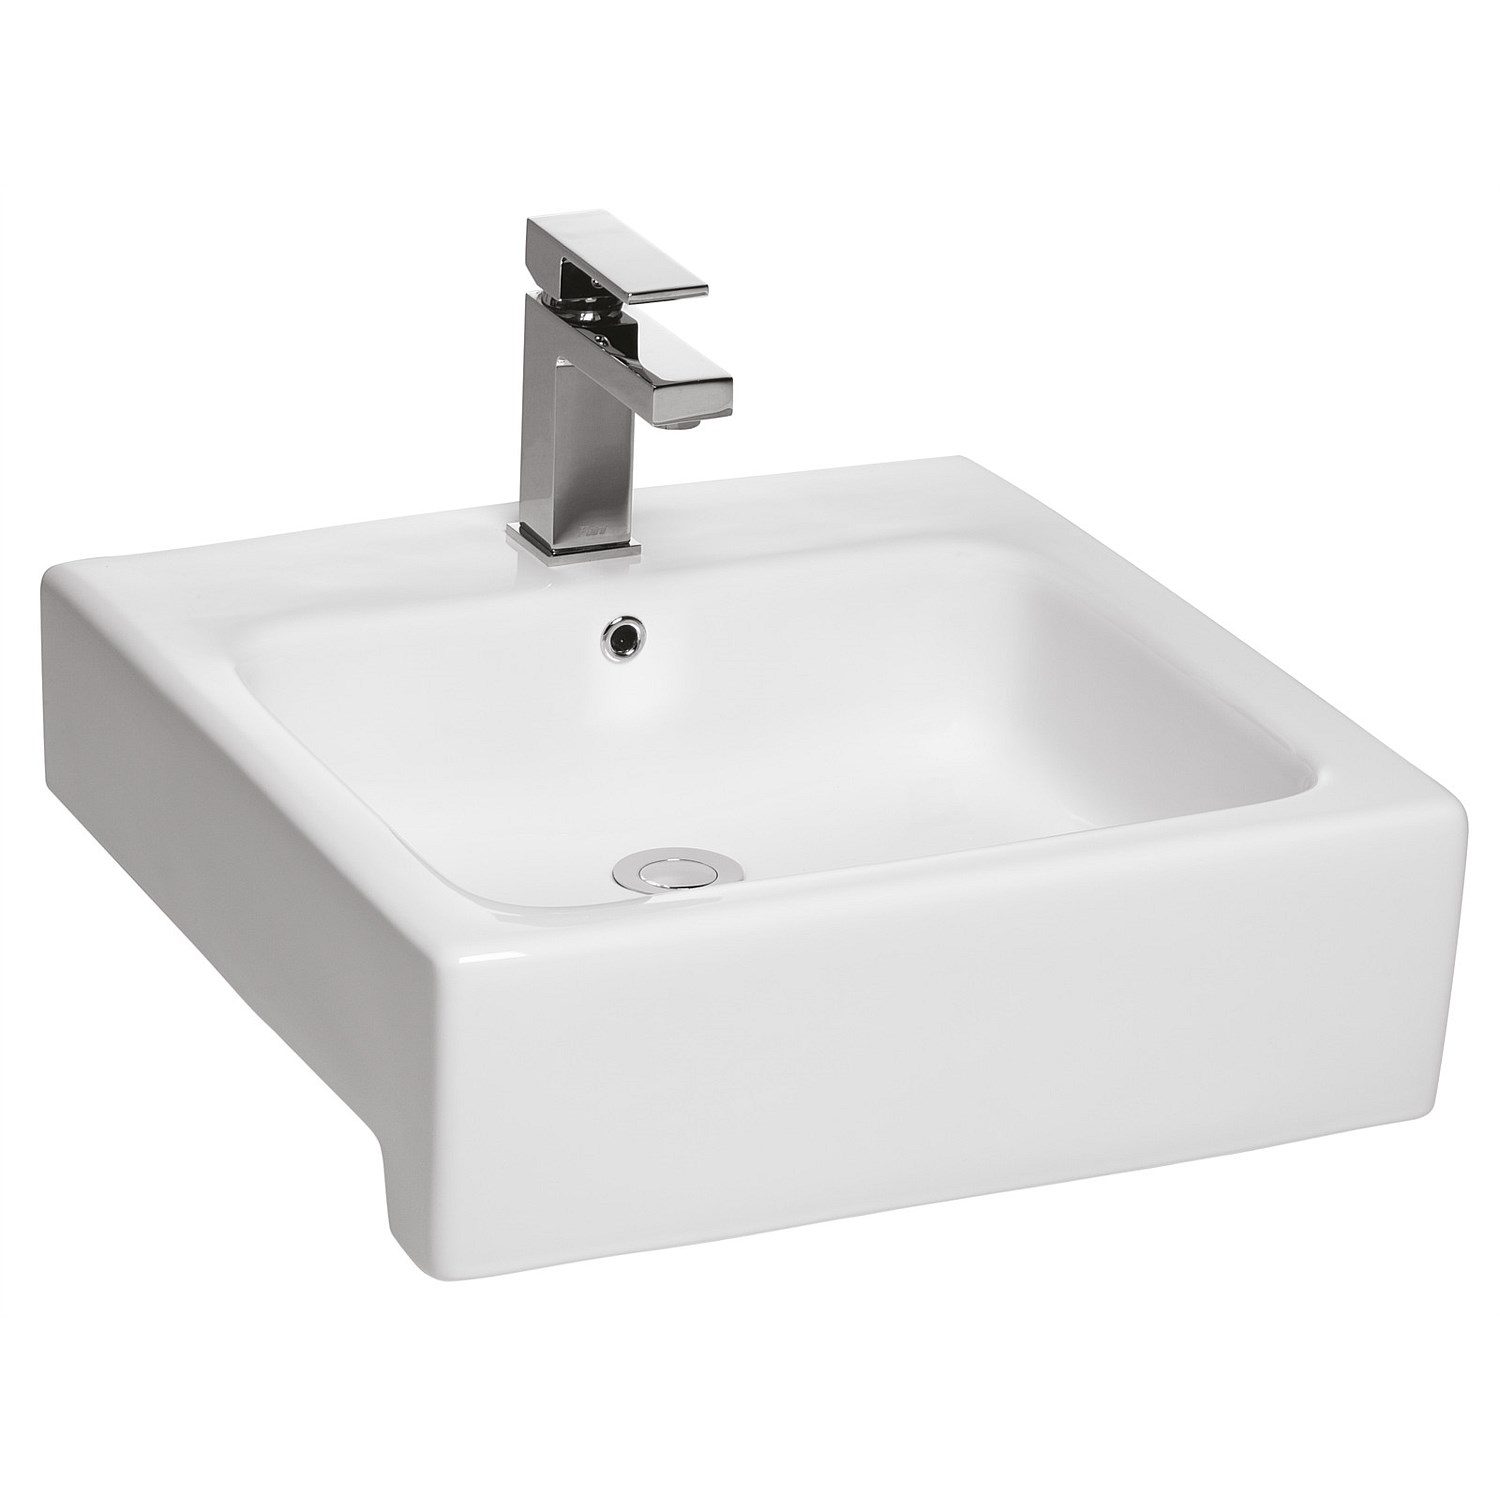 Semi Recessed Toto Valdes Square Semi Recessed Basin